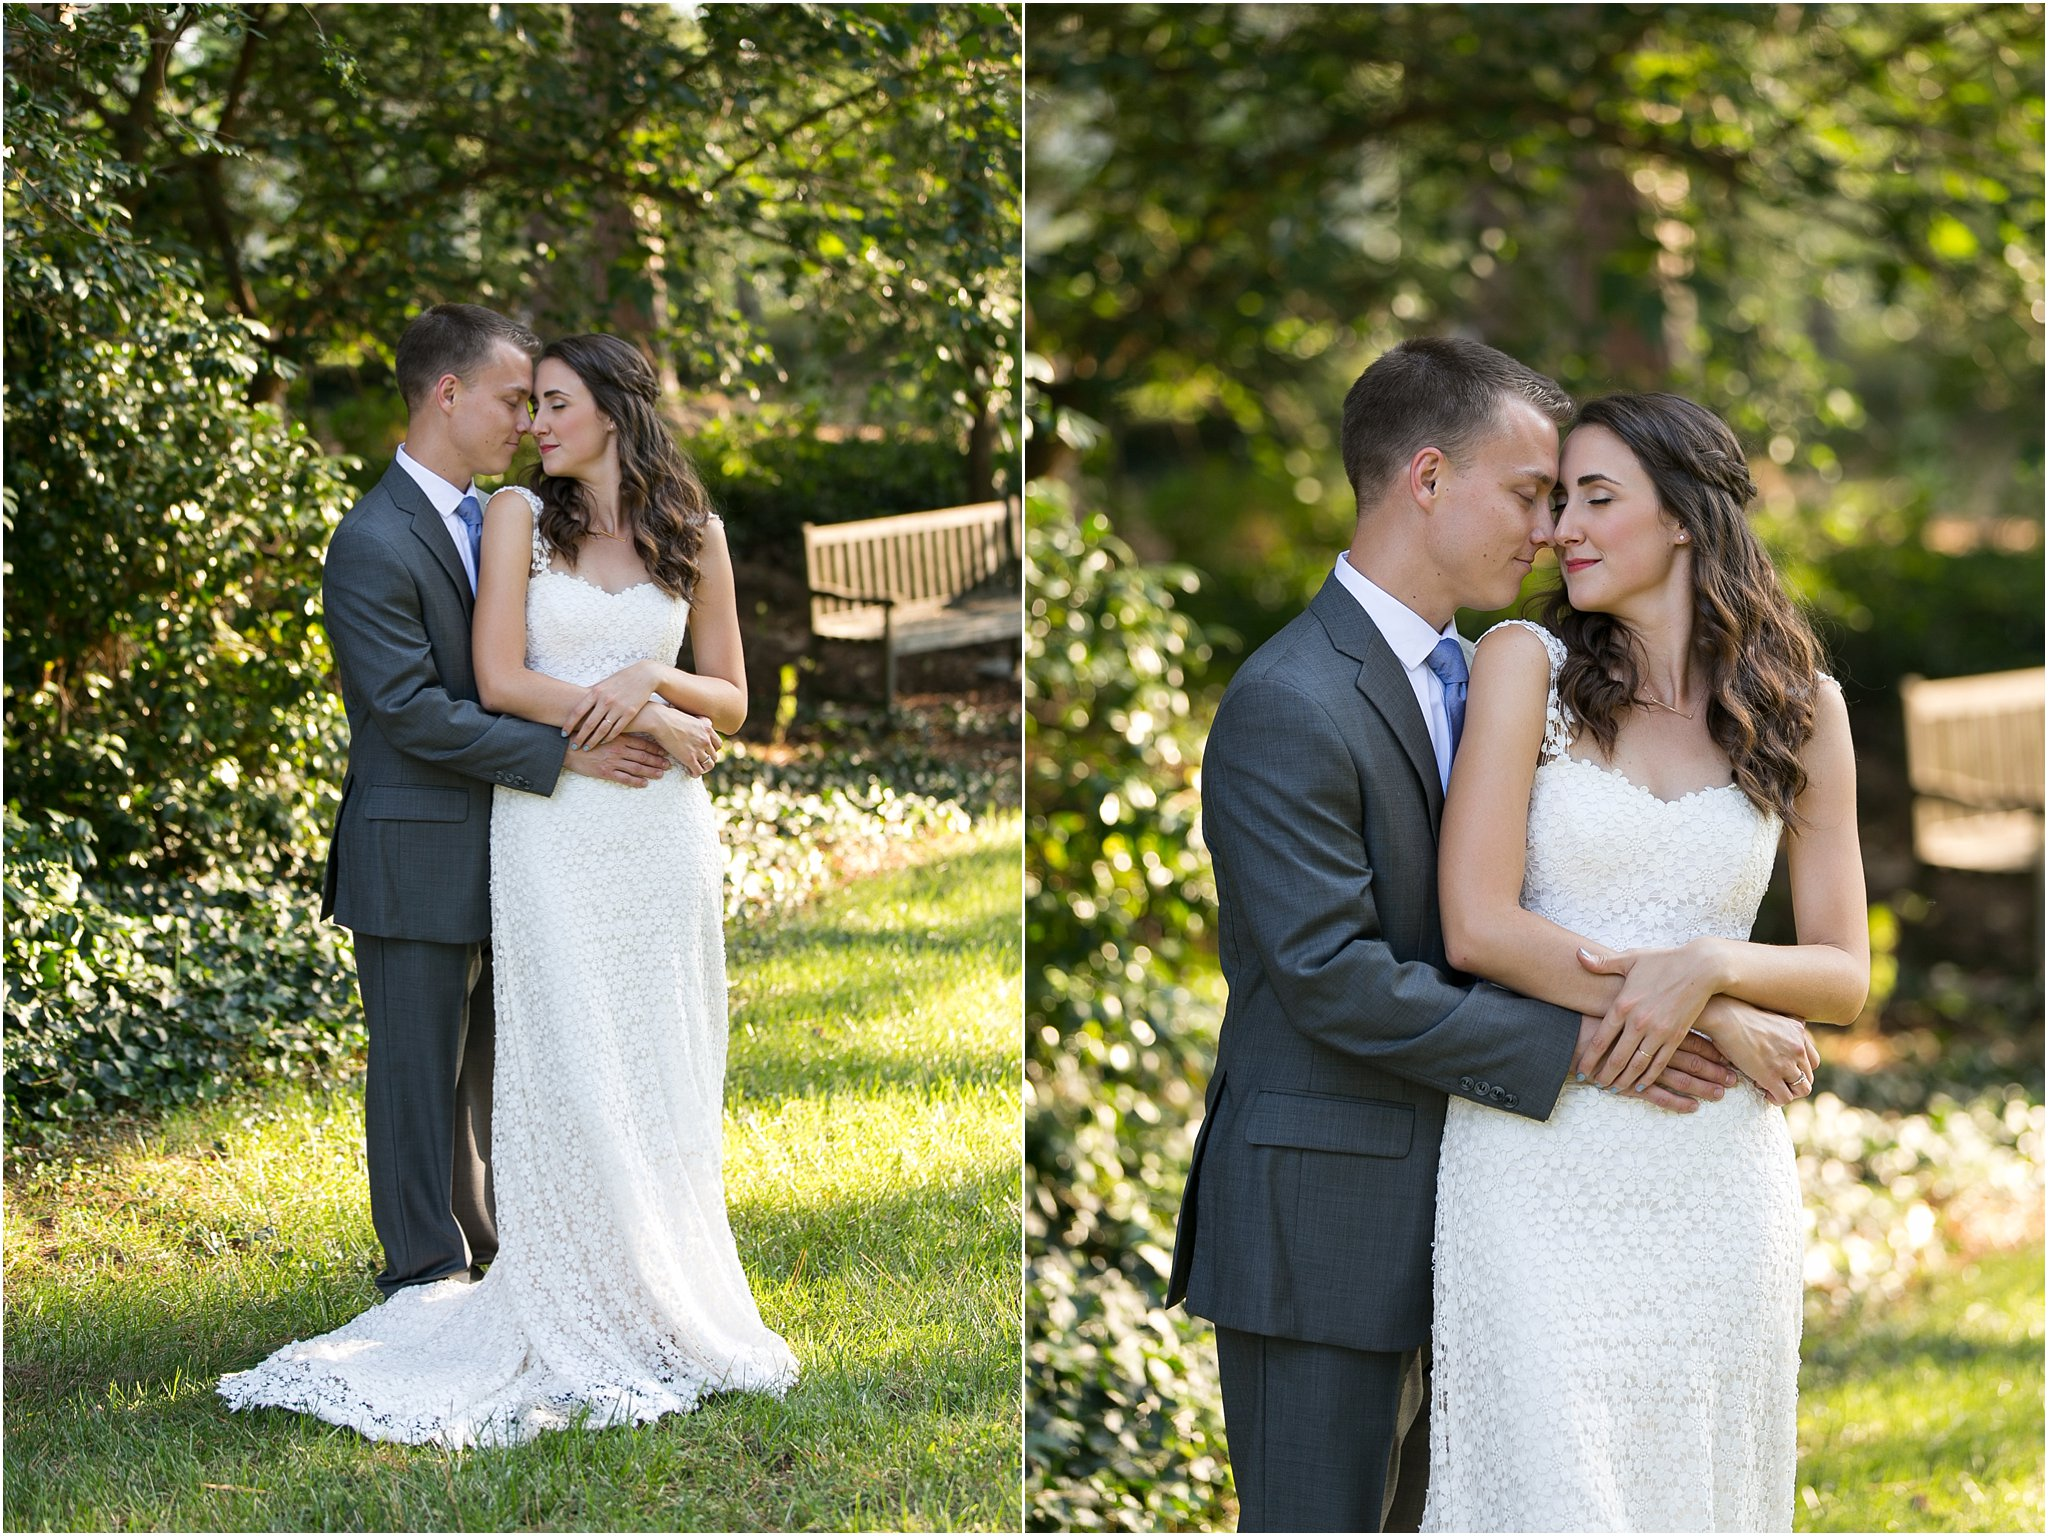 jessica_ryan_photography_womans_club_of_portsmouth_virginia_wedding_portsmouth_candid3_1115